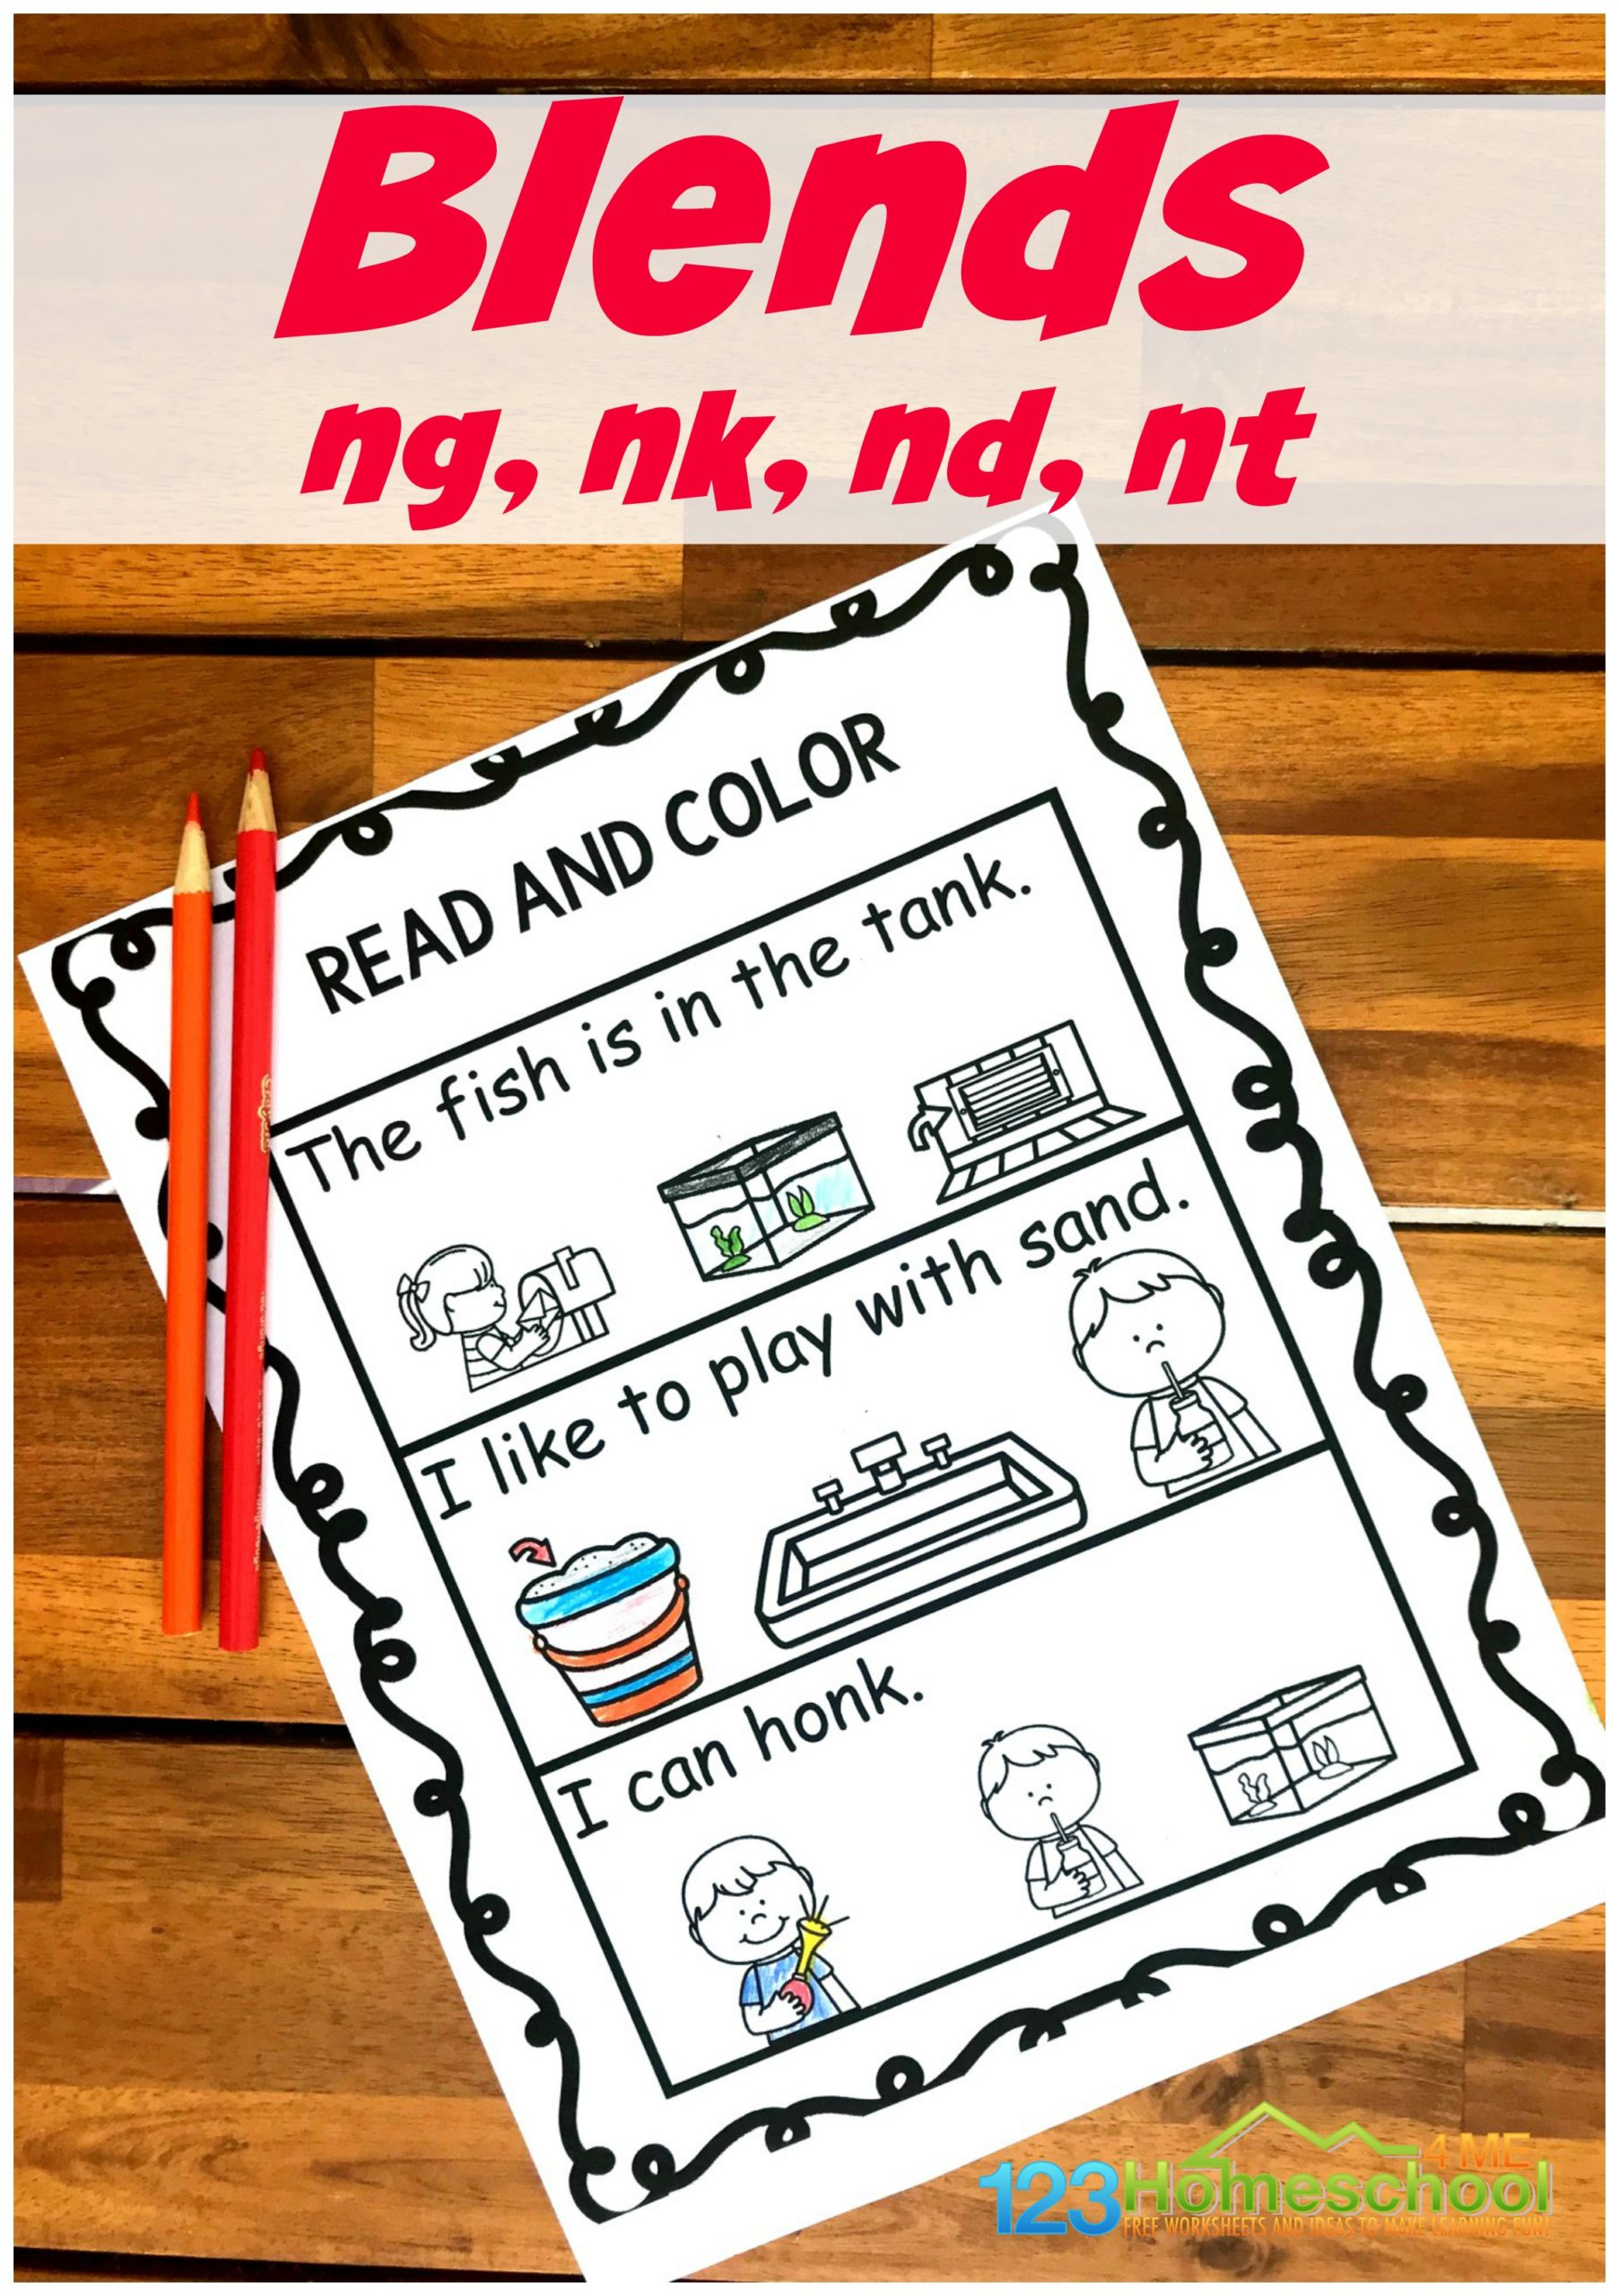 First grade students will have fun practicing reading n blends in sentences with these super cute, free Blends Worksheets. For this ending blends activity students will simply read the ng, nk, nd, and nt blends and color the picture that demonstrates what you just read. Simply download the pdf file with the n blends worksheets and you are ready to read and color with your 1st grader.